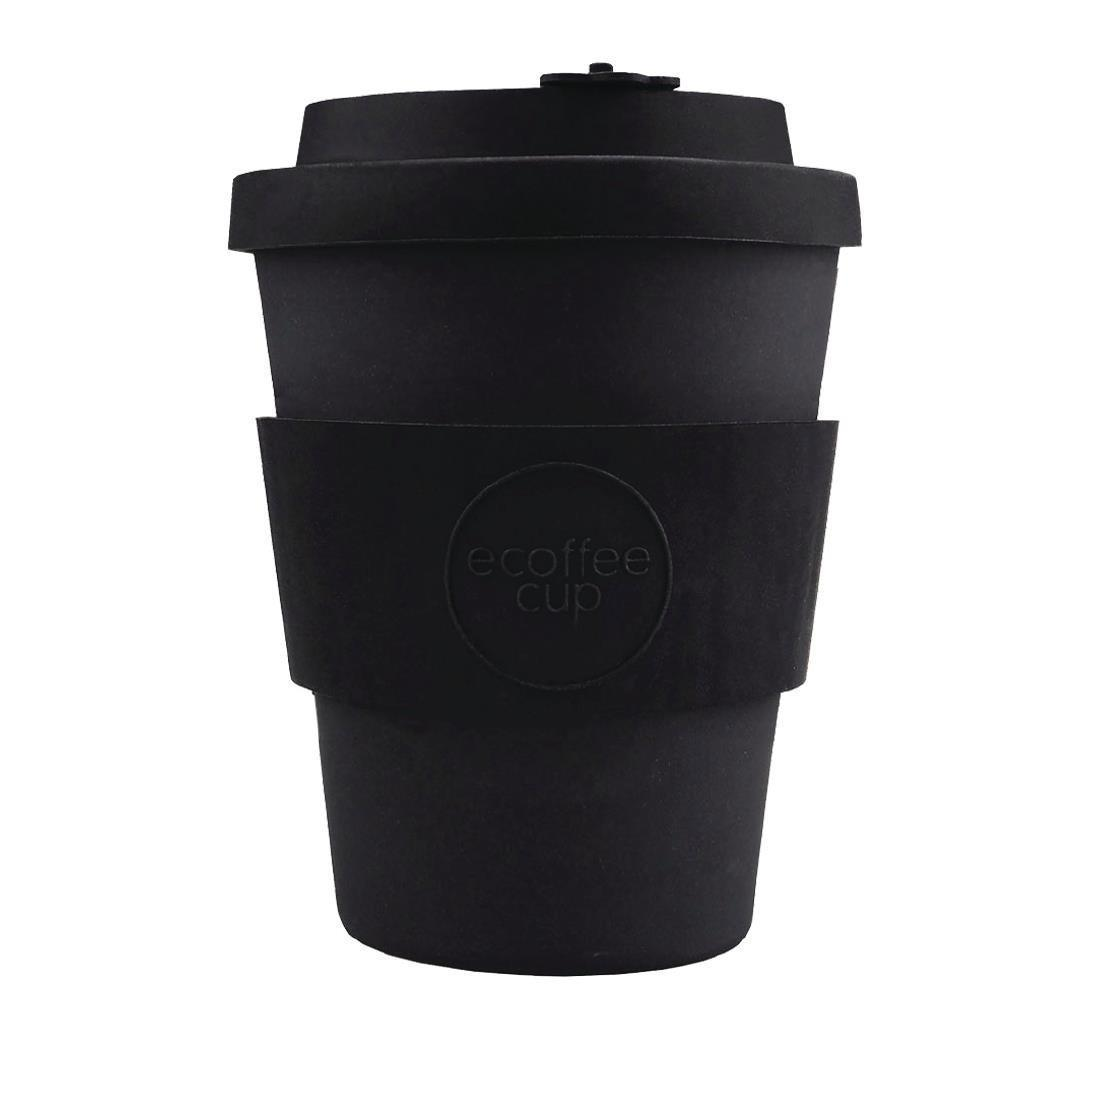 Ecoffee Cup Bamboo Reusable Coffee Cup Kerr & Napier Black 12oz - Each - DY487